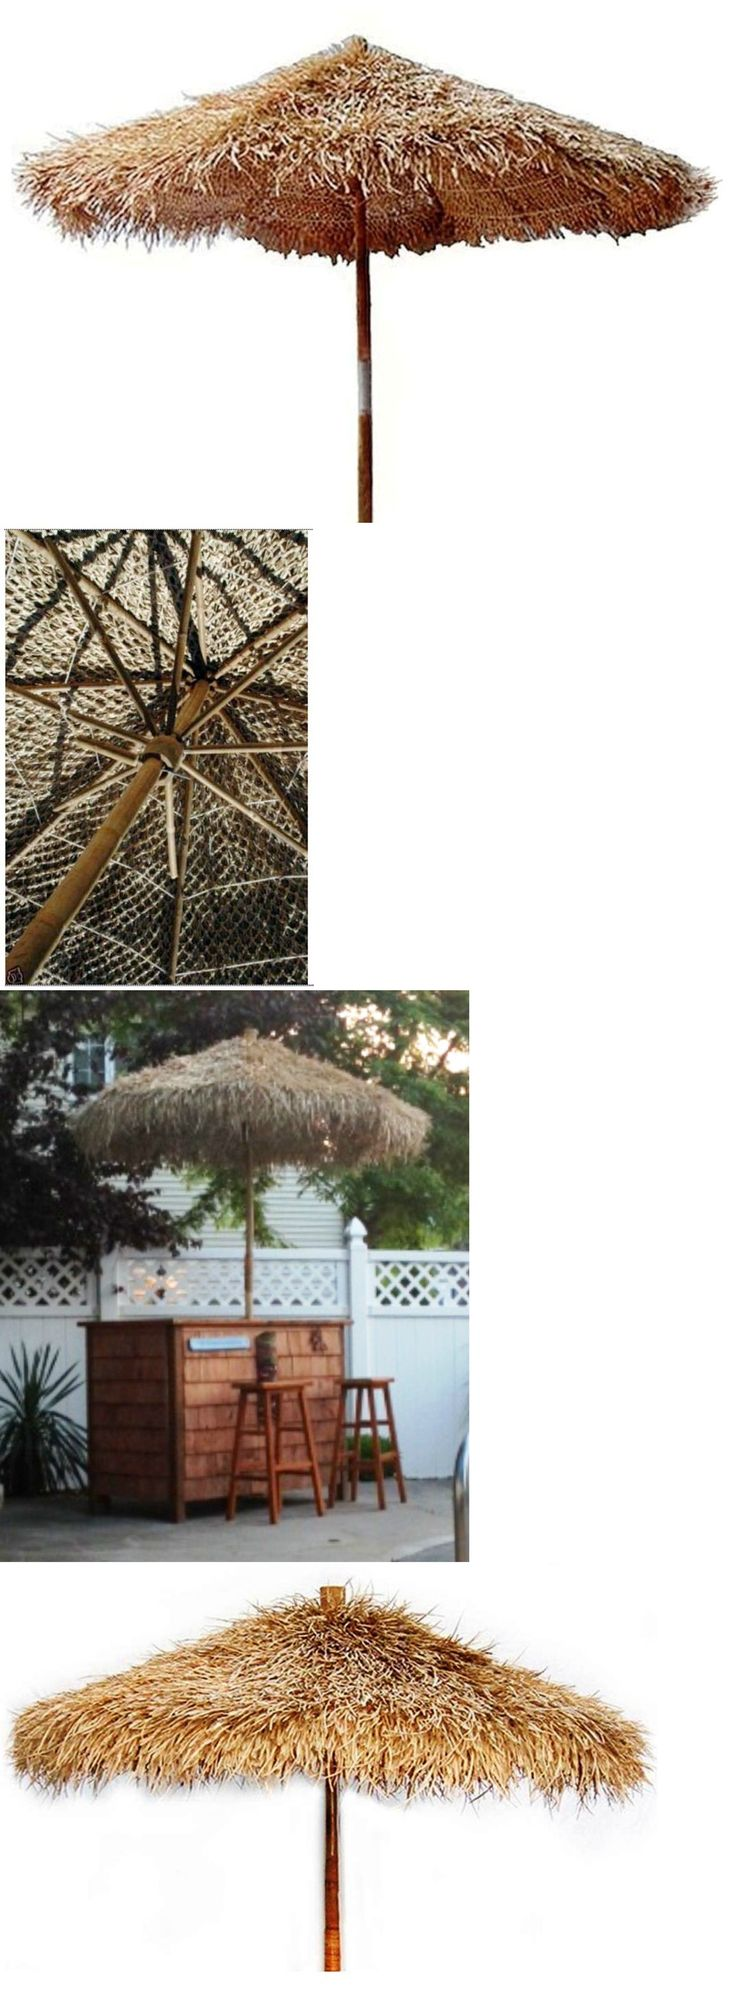 Umbrellas 180998: Bamboo Thatch Tiki Umbrella-For Patio Bar Palapa Set-Choice Of 3 Sizes And Stand -> BUY IT NOW ONLY: $249.99 on eBay!